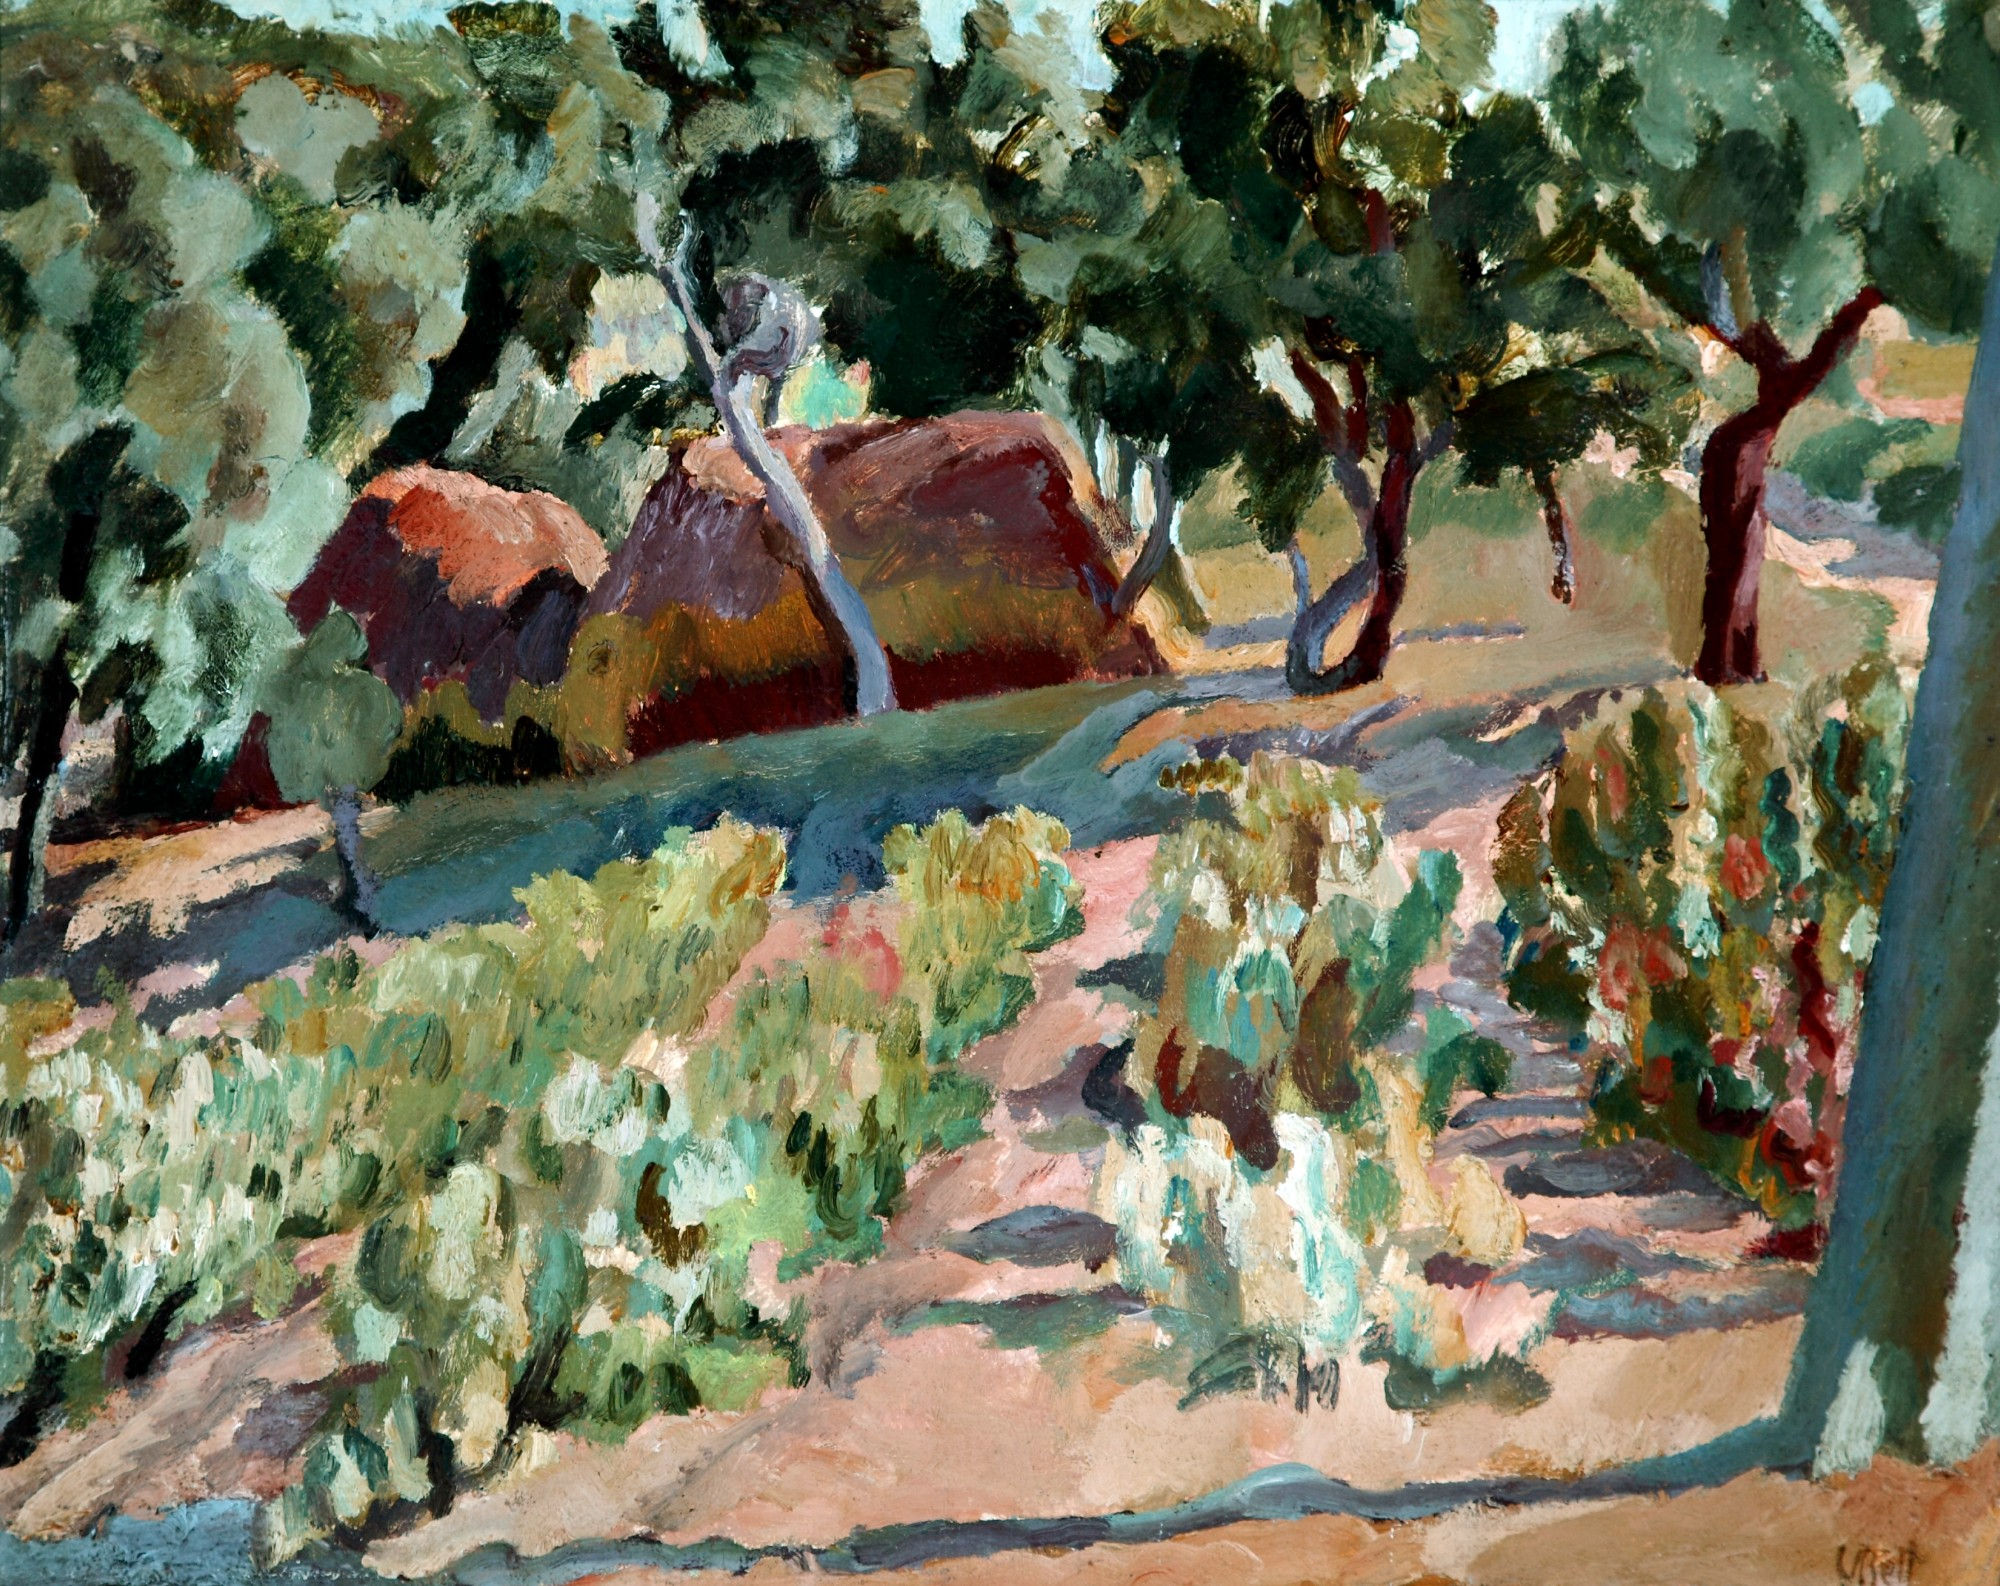 Vanessa Bell (1879 – 1961) - The Vineyard. Date unknown. The Atkinson, Lord Street, Southport. The Estate of Vanessa Bell, courtesy of Henrietta Garnett